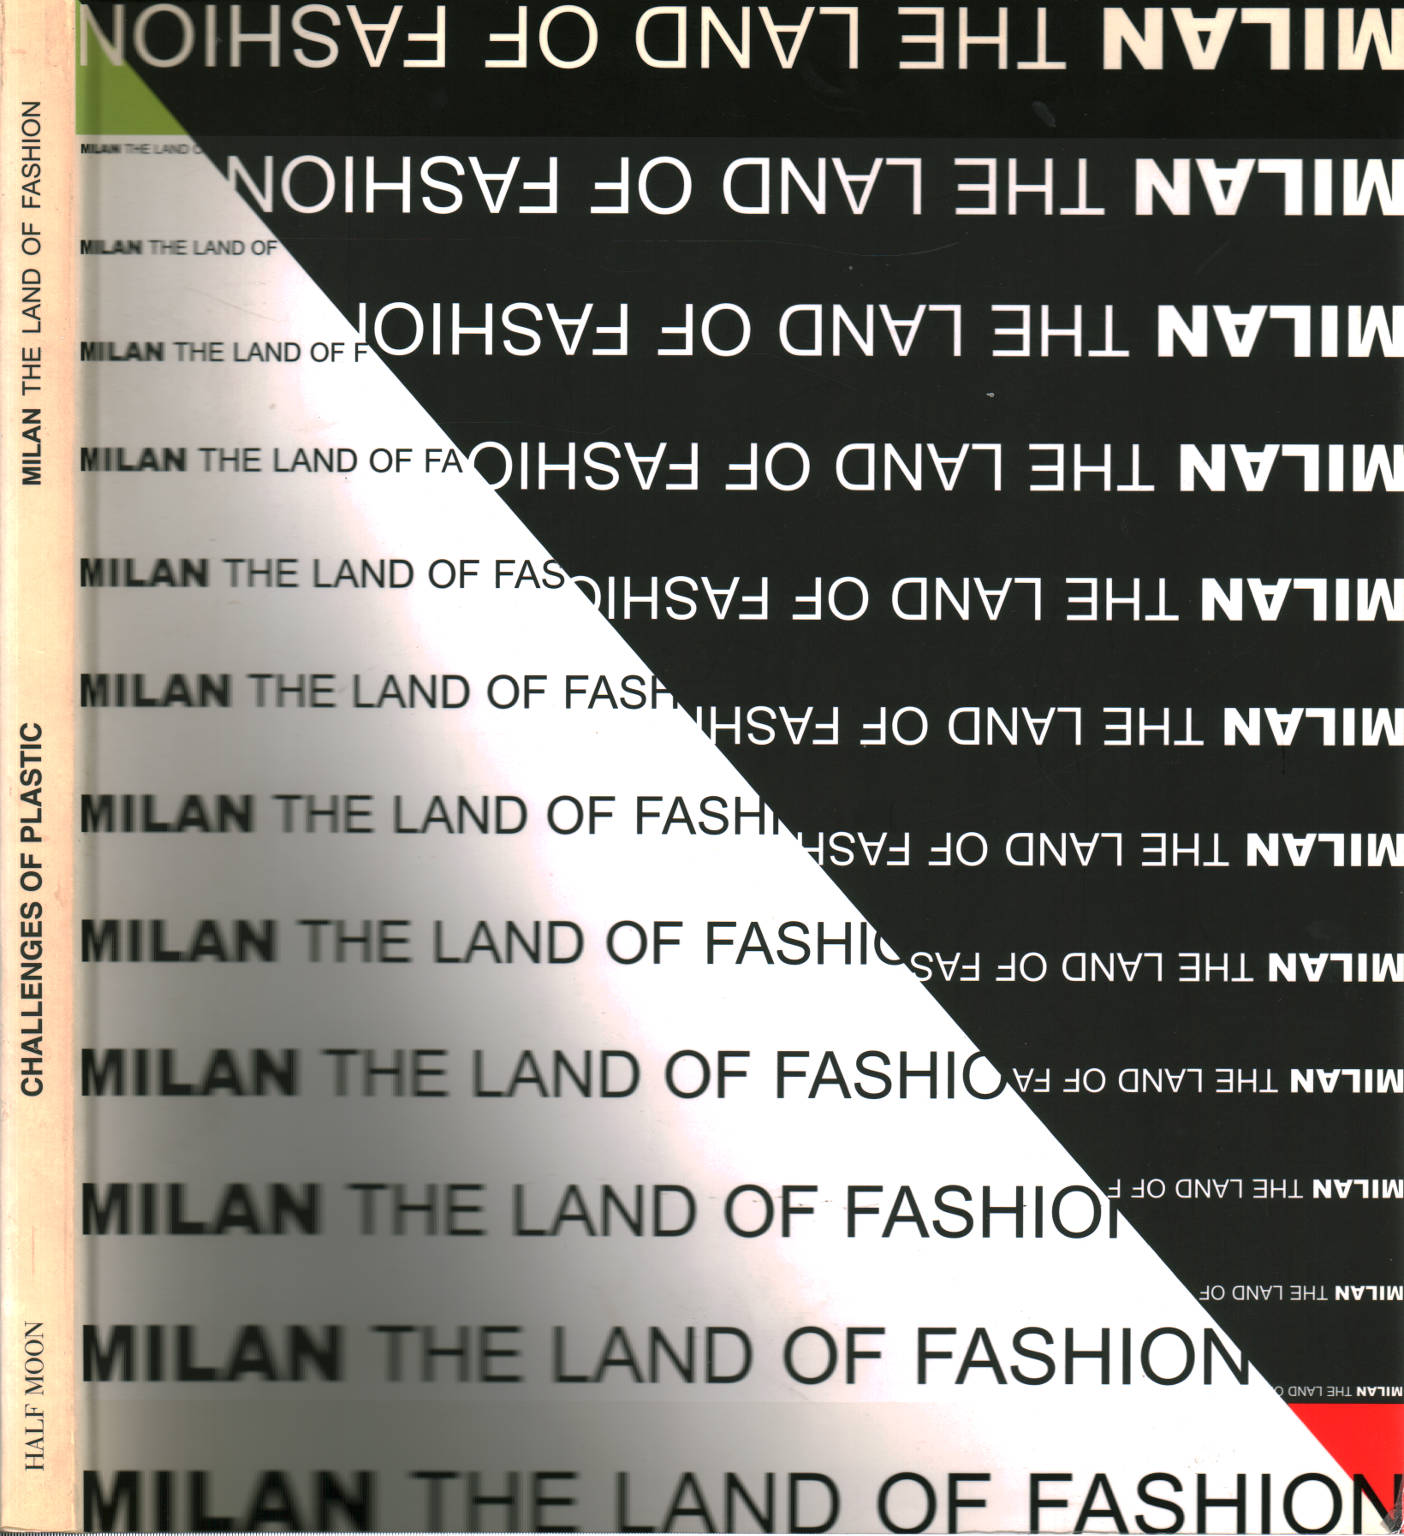 Challenges of plastic - Milan the land of fashion